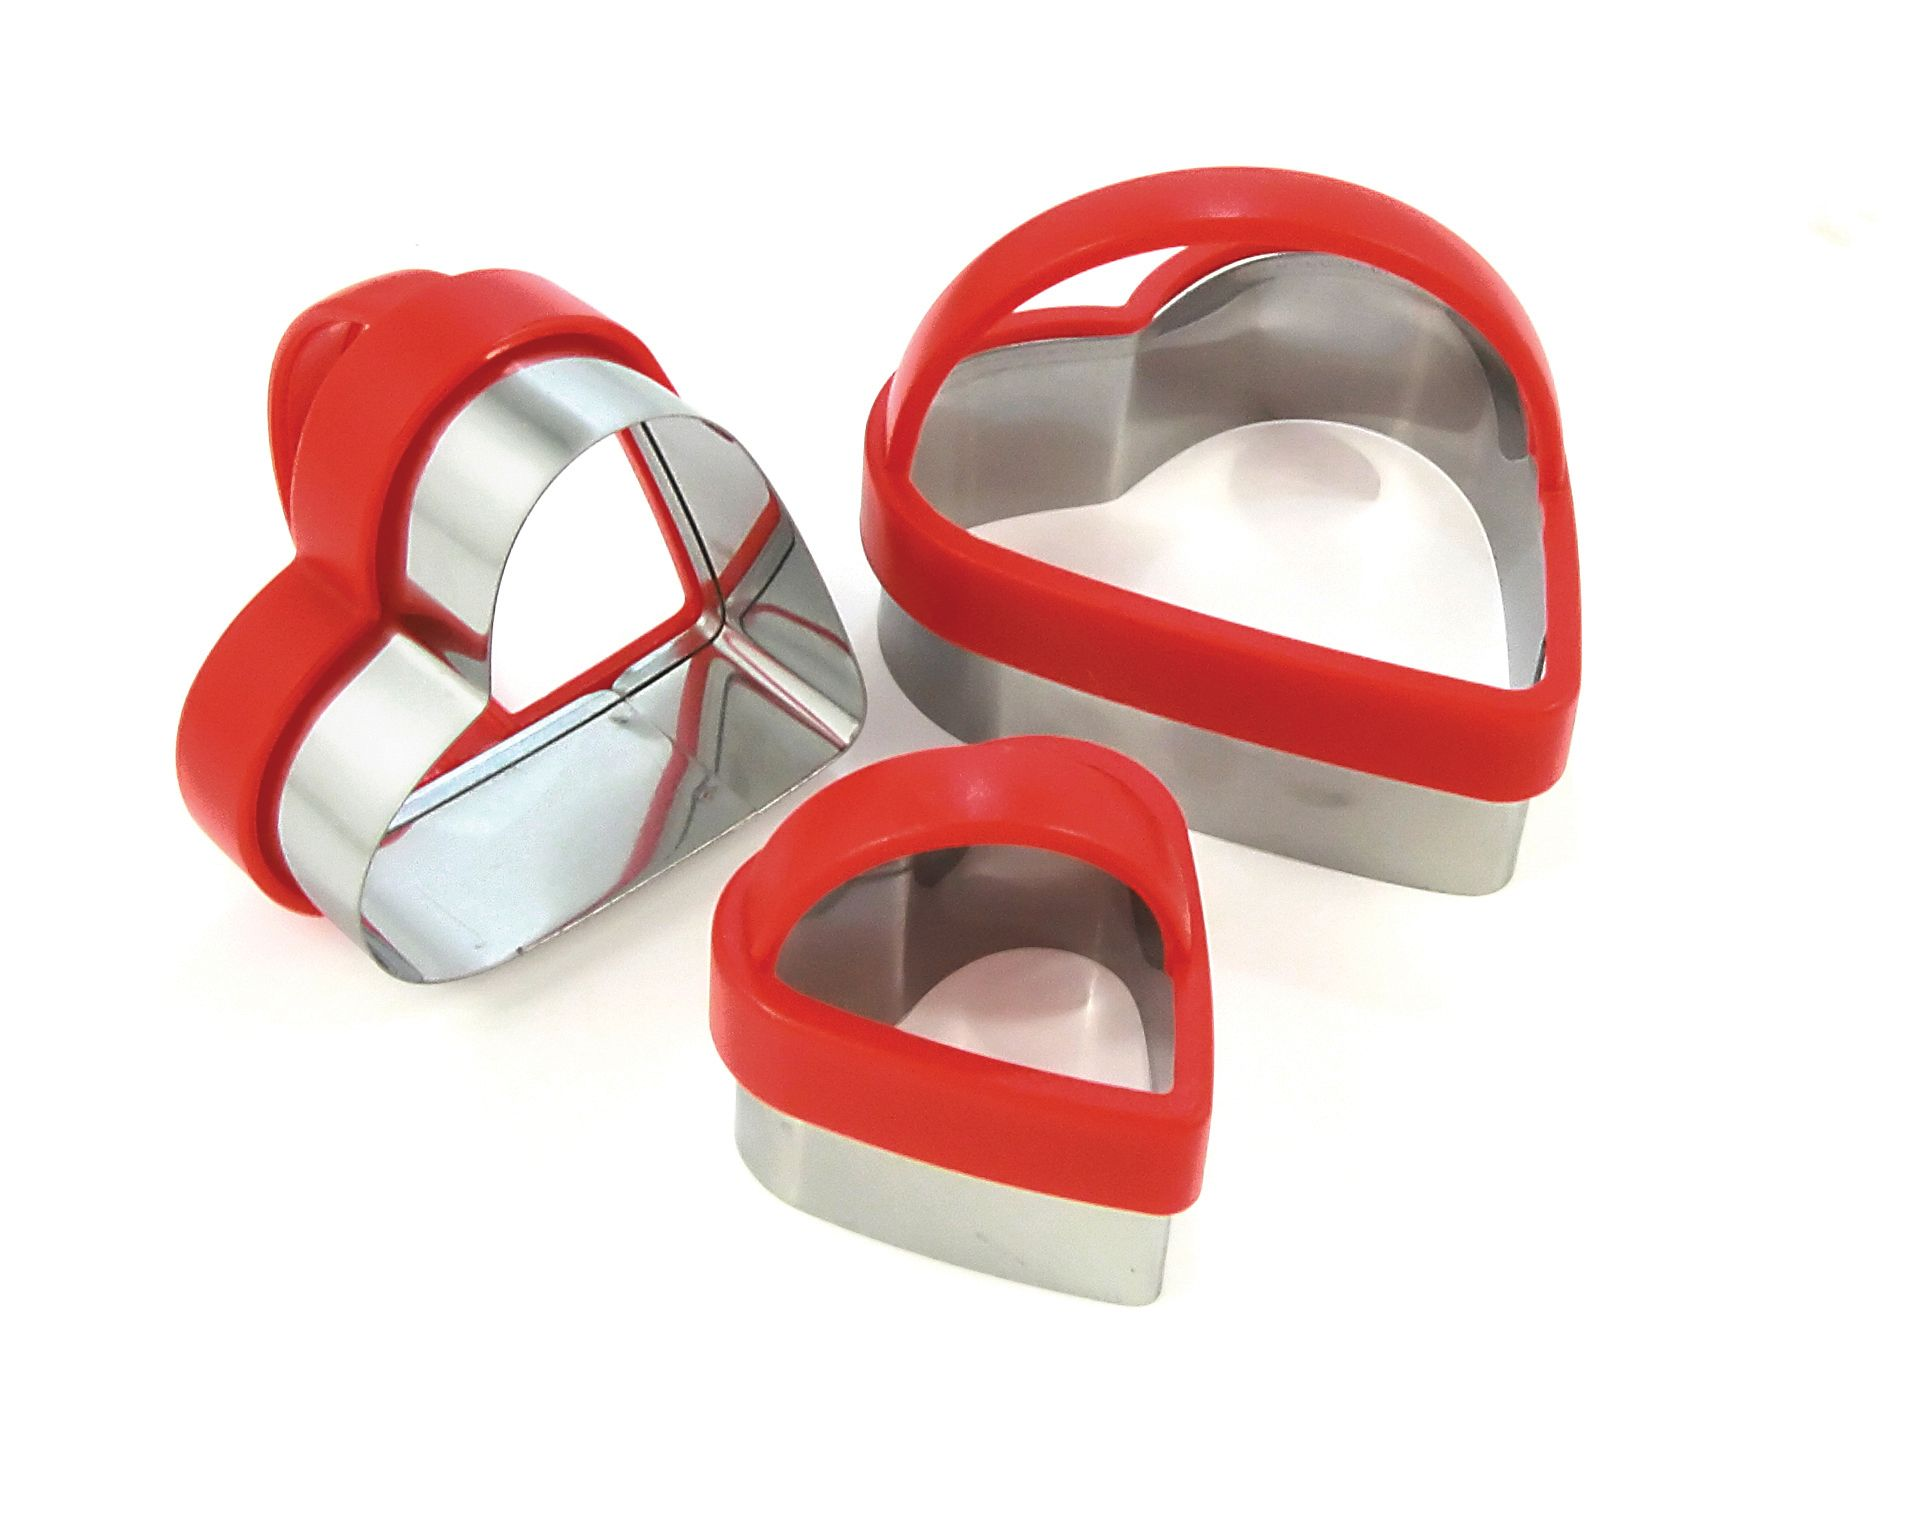 heart pastry cutters £1.70 set of 3 +VAT